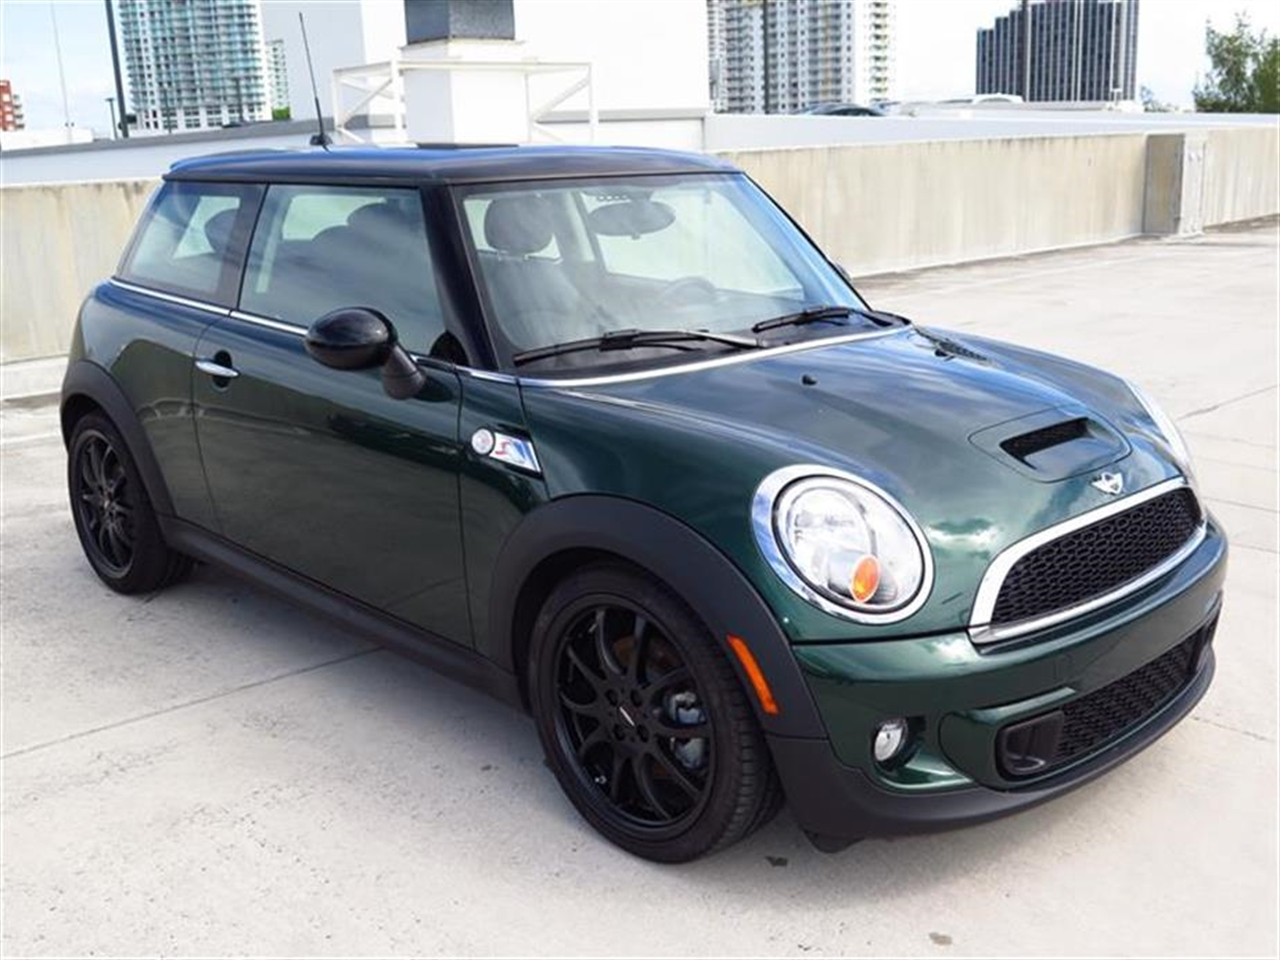 2013 MINI COOPER S 2dr Cpe S 8220 miles 1 rear cup holder 12V auxiliary pwr outlet in cockpit